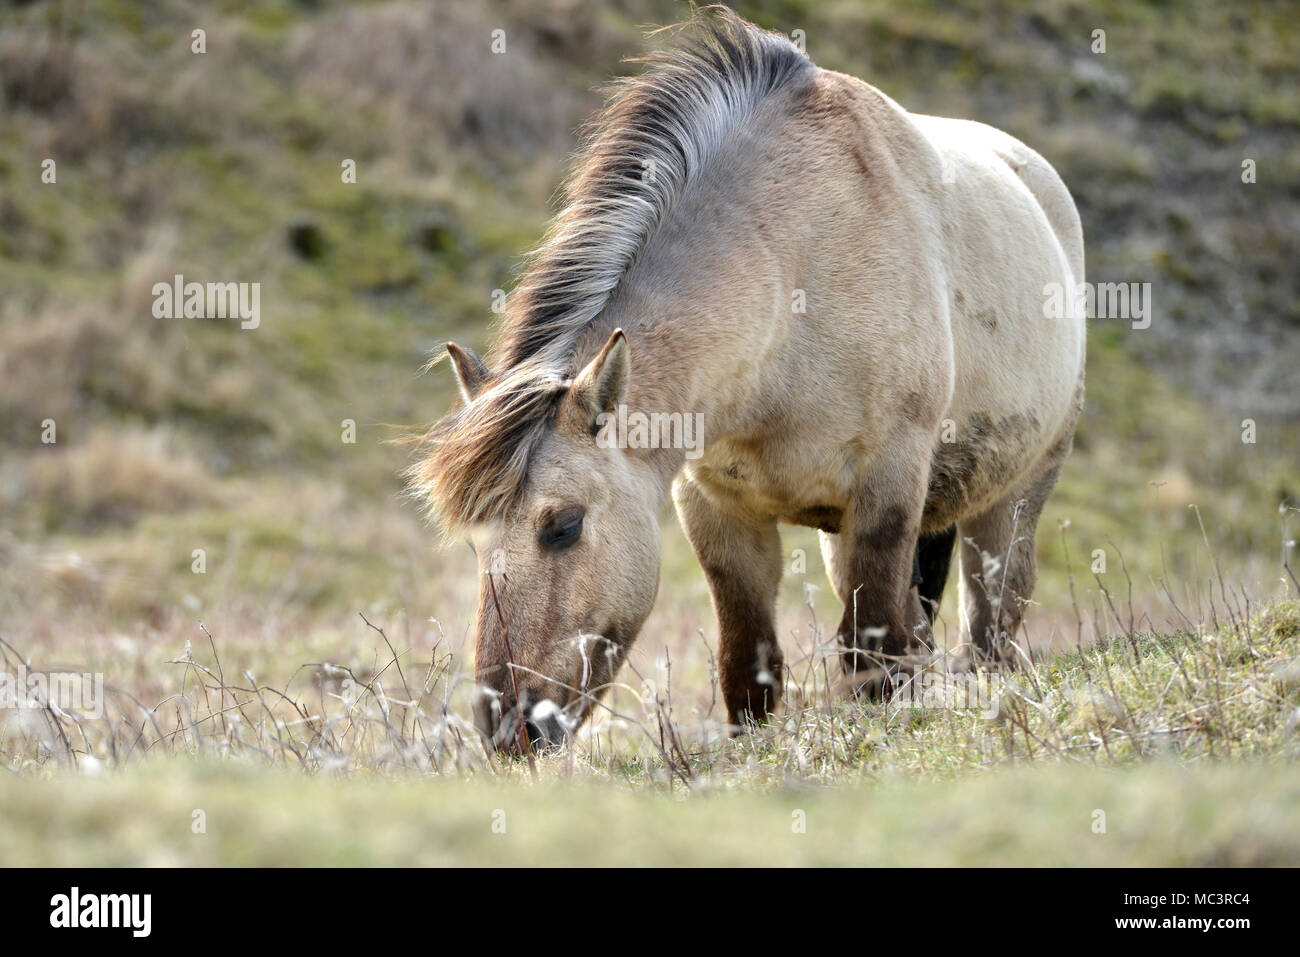 Konik ponis en Malling, Lewes, East Sussex, utilizada por Sussex Wildlife Trust a pastar en el Parque Nacional de South Downs. Imagen De Stock